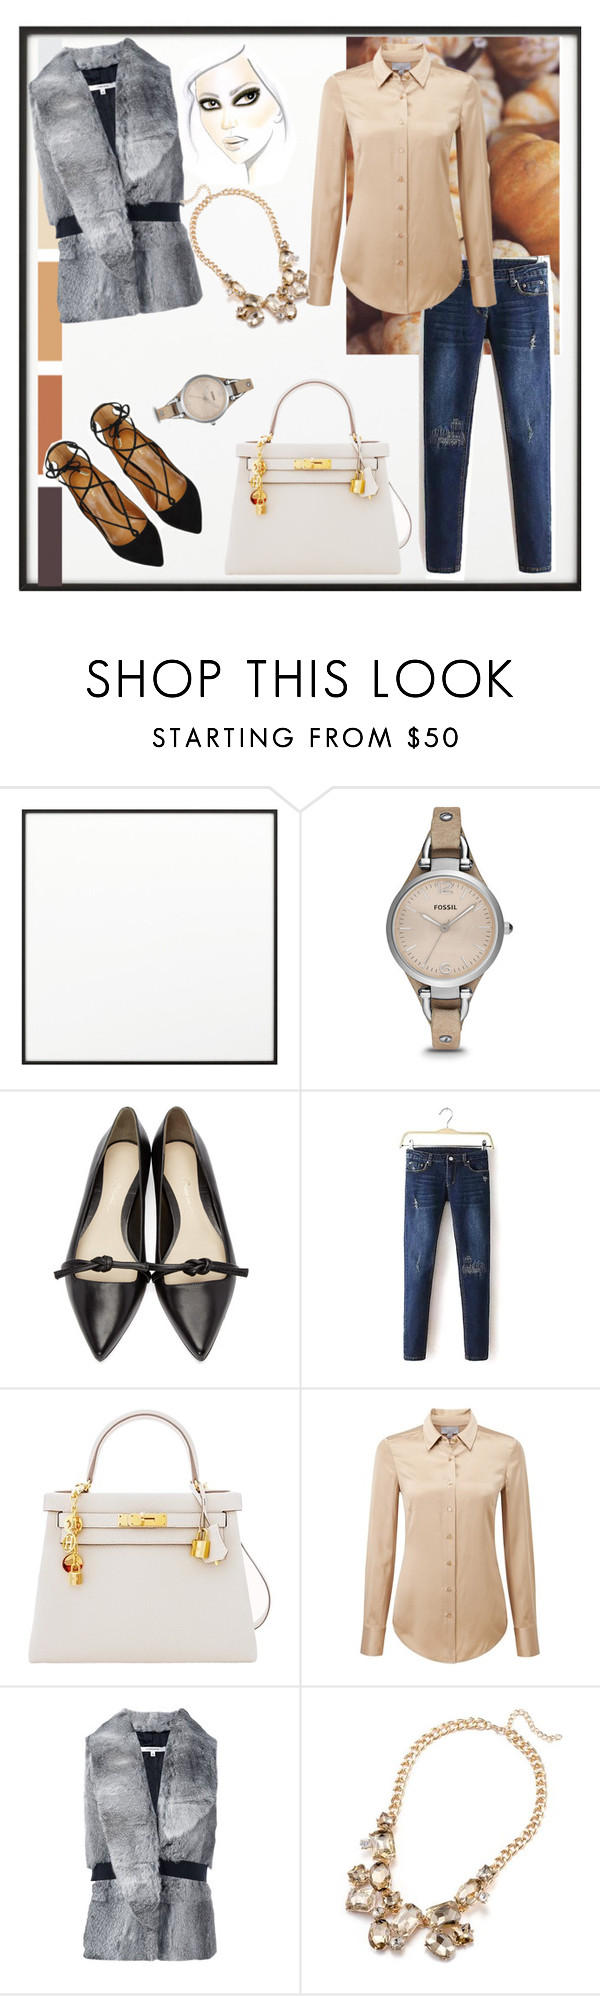 """""""Untitled #349"""" by blackparrott ❤ liked on Polyvore featuring By Lassen, FOSSIL, 3.1 Phillip Lim, Hermès, Pure Collection, Carven and Aquazzura"""